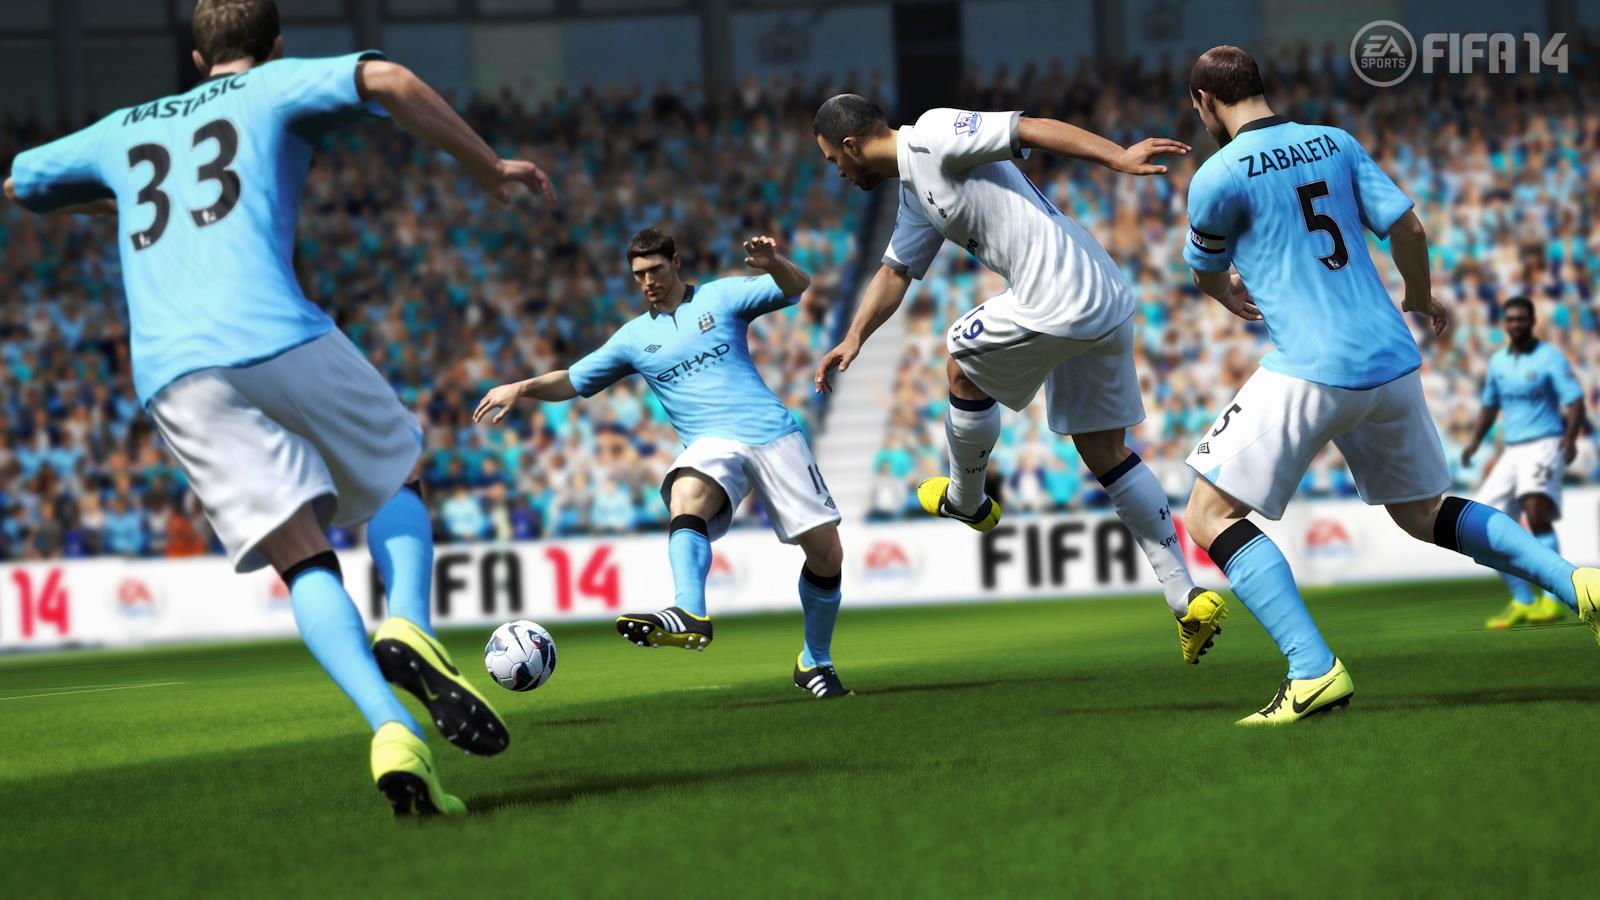 With Teammate Intelligence in FIFA 14, players will have better decision-making and teams will play smarter on both the attack and defense to bring the beauty of the game to life.